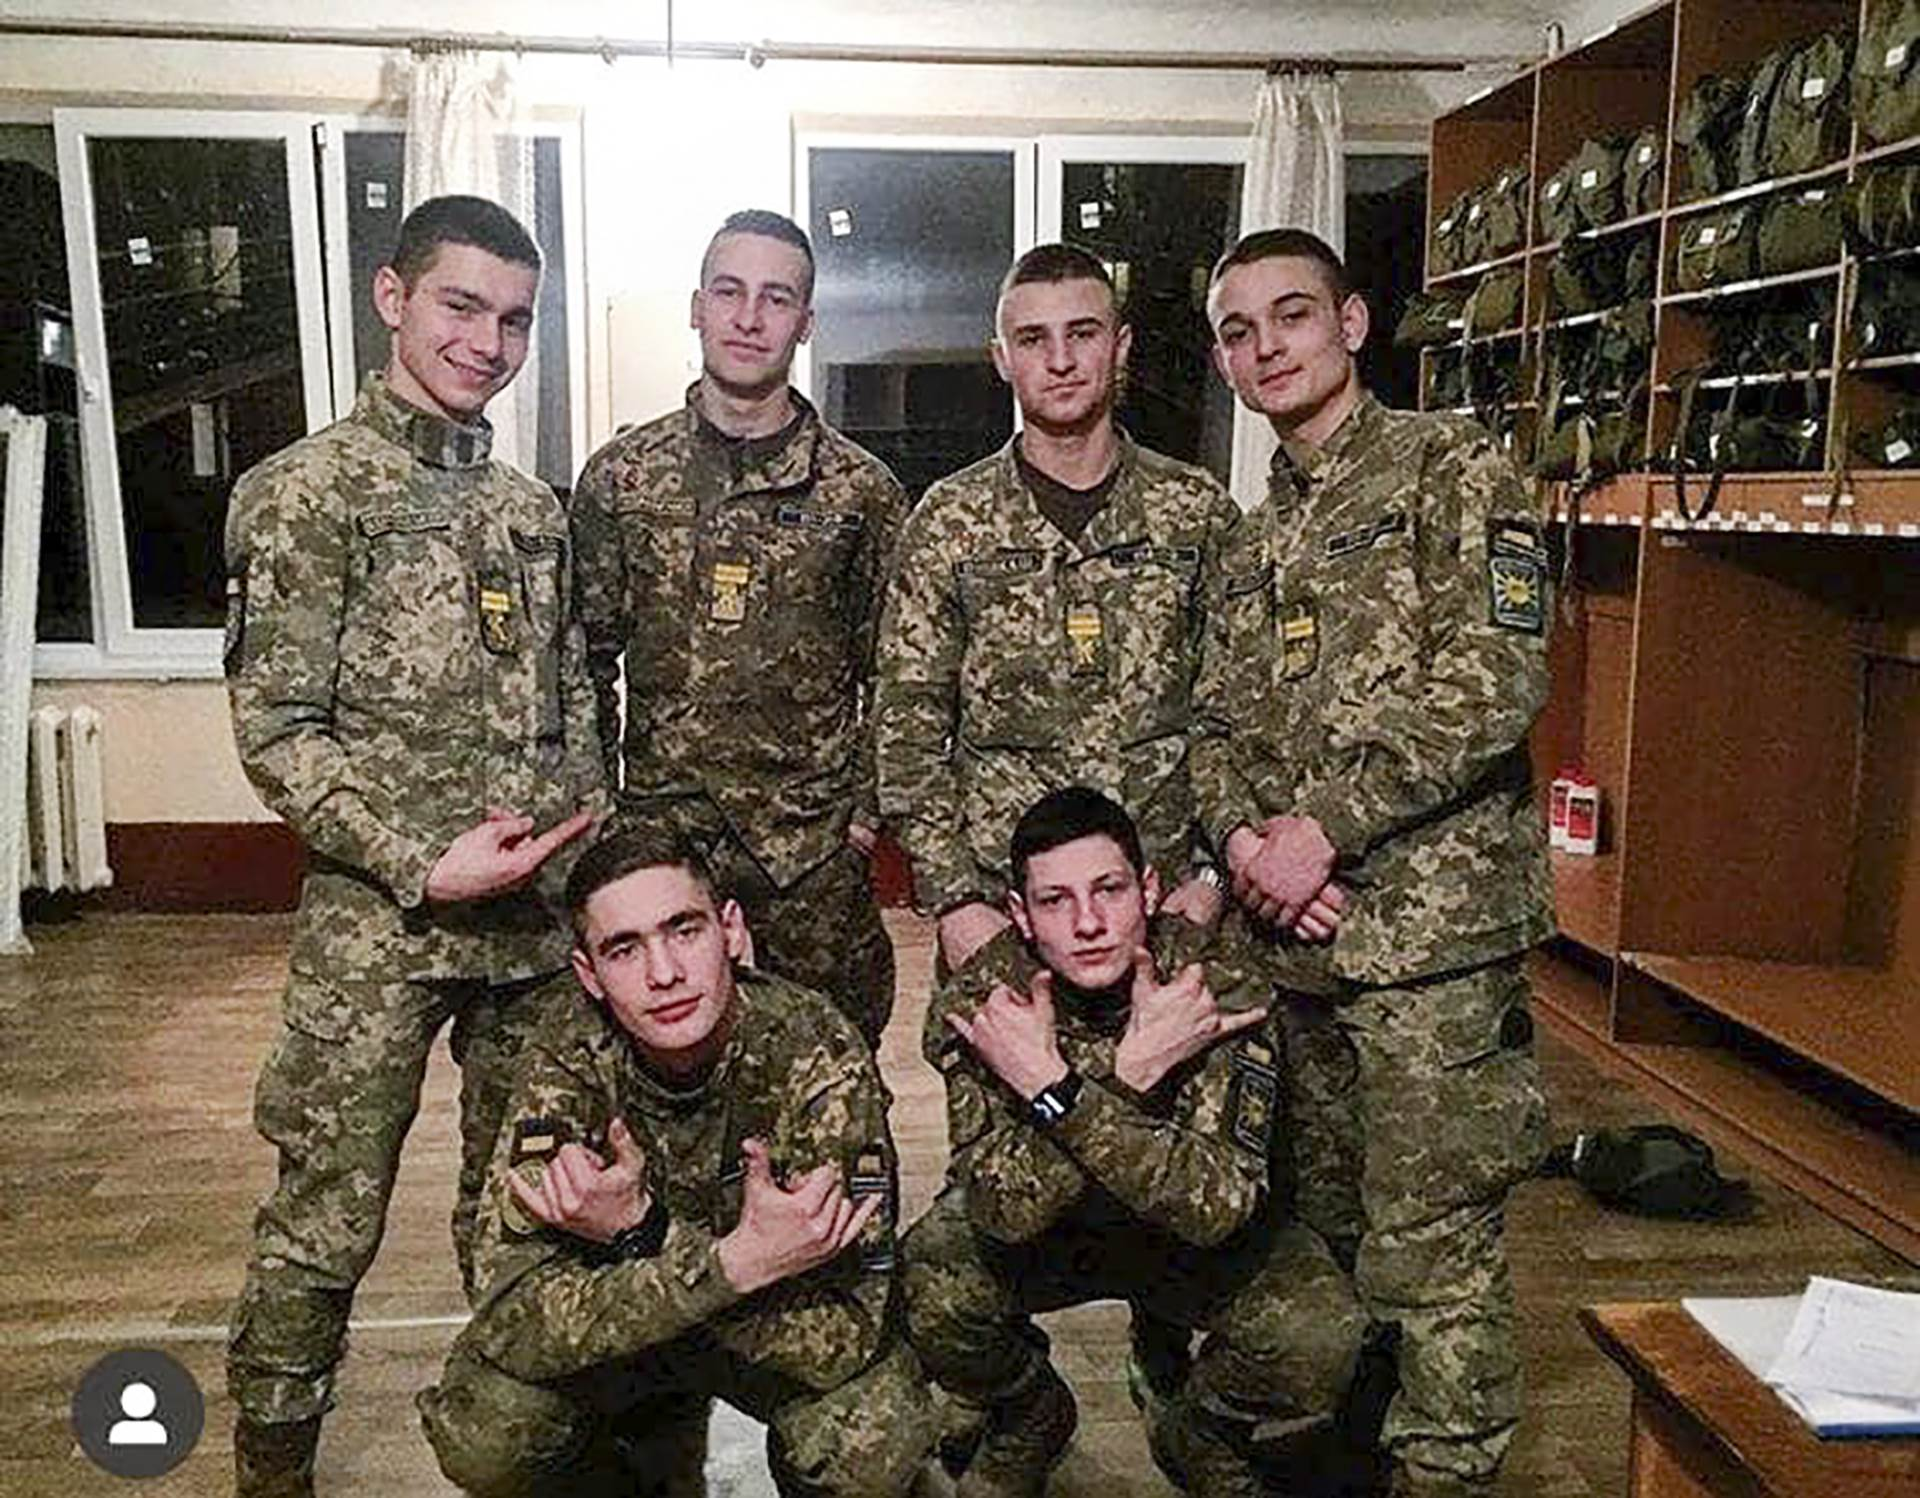 This undated photo provided by Ukraine's Police Saturday, Sept. 26, 2020 shows cadets of a military aviation school killed in an AN-26 military plane crash, pose for photo. AN-26 military plane crashed in the town of Chuhuiv close to Kharkiv late Friday Sept. 25, 2020, killing 26 of the 27 people aboard. The plane, a twin-turboprop Antonov-26 belonging to the Ukrainian air force, was carrying a crew of seven and 20 cadets of a military aviation school when it crashed and burst into flames while coming in for landing at the airport in Chuhuiv, about 400 kilometers (250 miles) east of the capital Kyiv. (Ukrainian Police Press Office via AP)